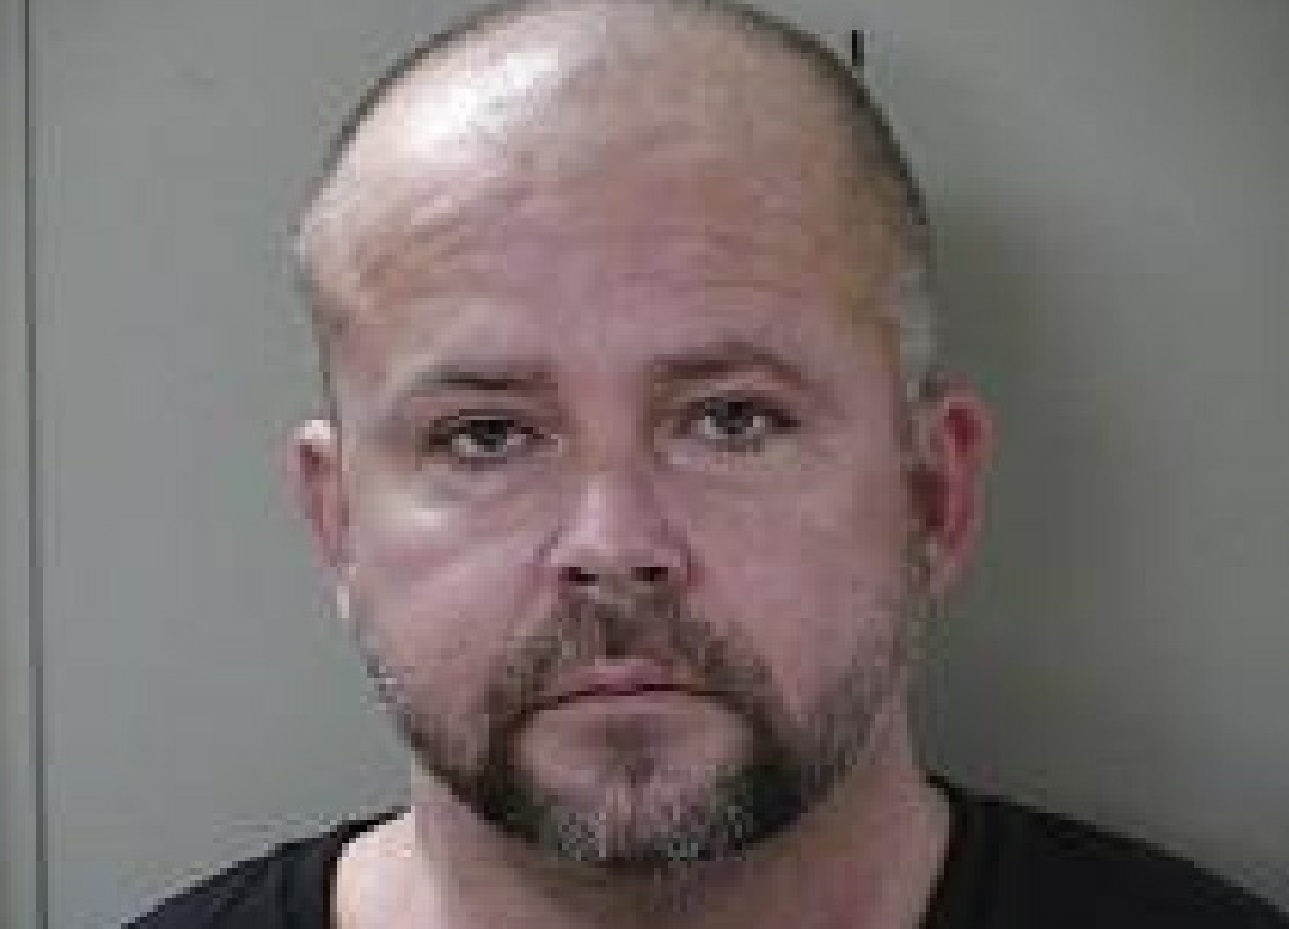 West Virginia man charged with DUI #3 in Murfreesboro